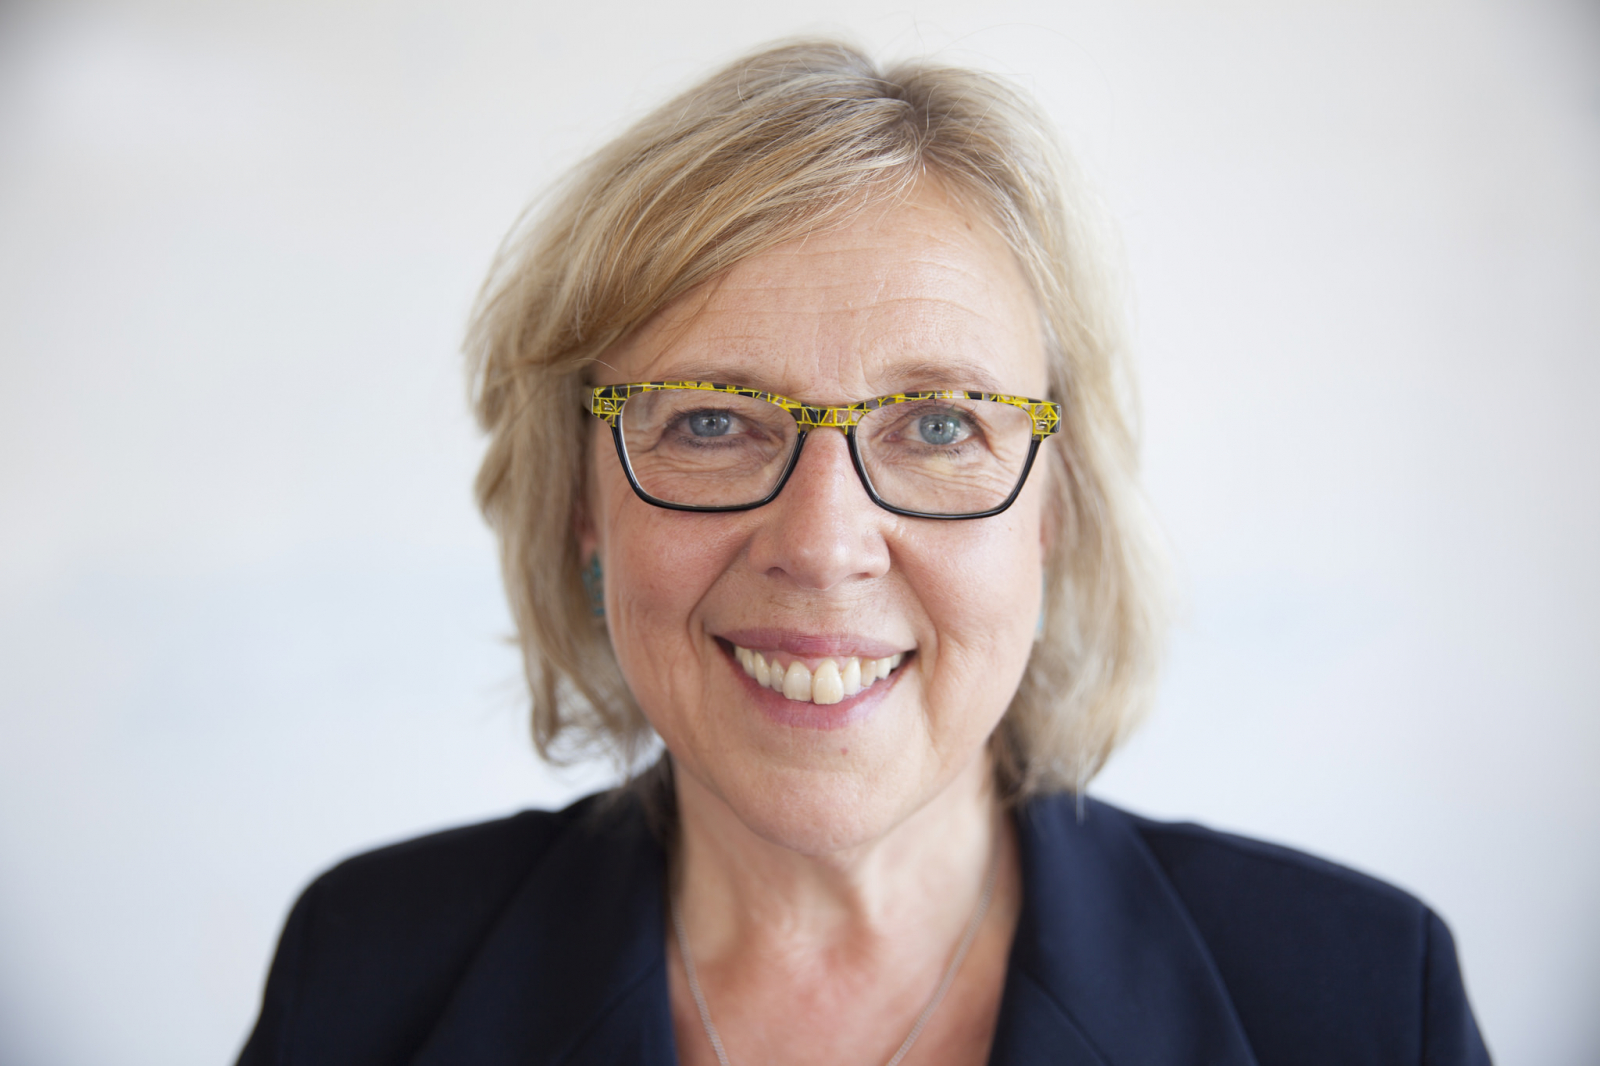 Elizabeth May Green Party Leader - COP21 - Kyoto - Mychaylo Prystupa